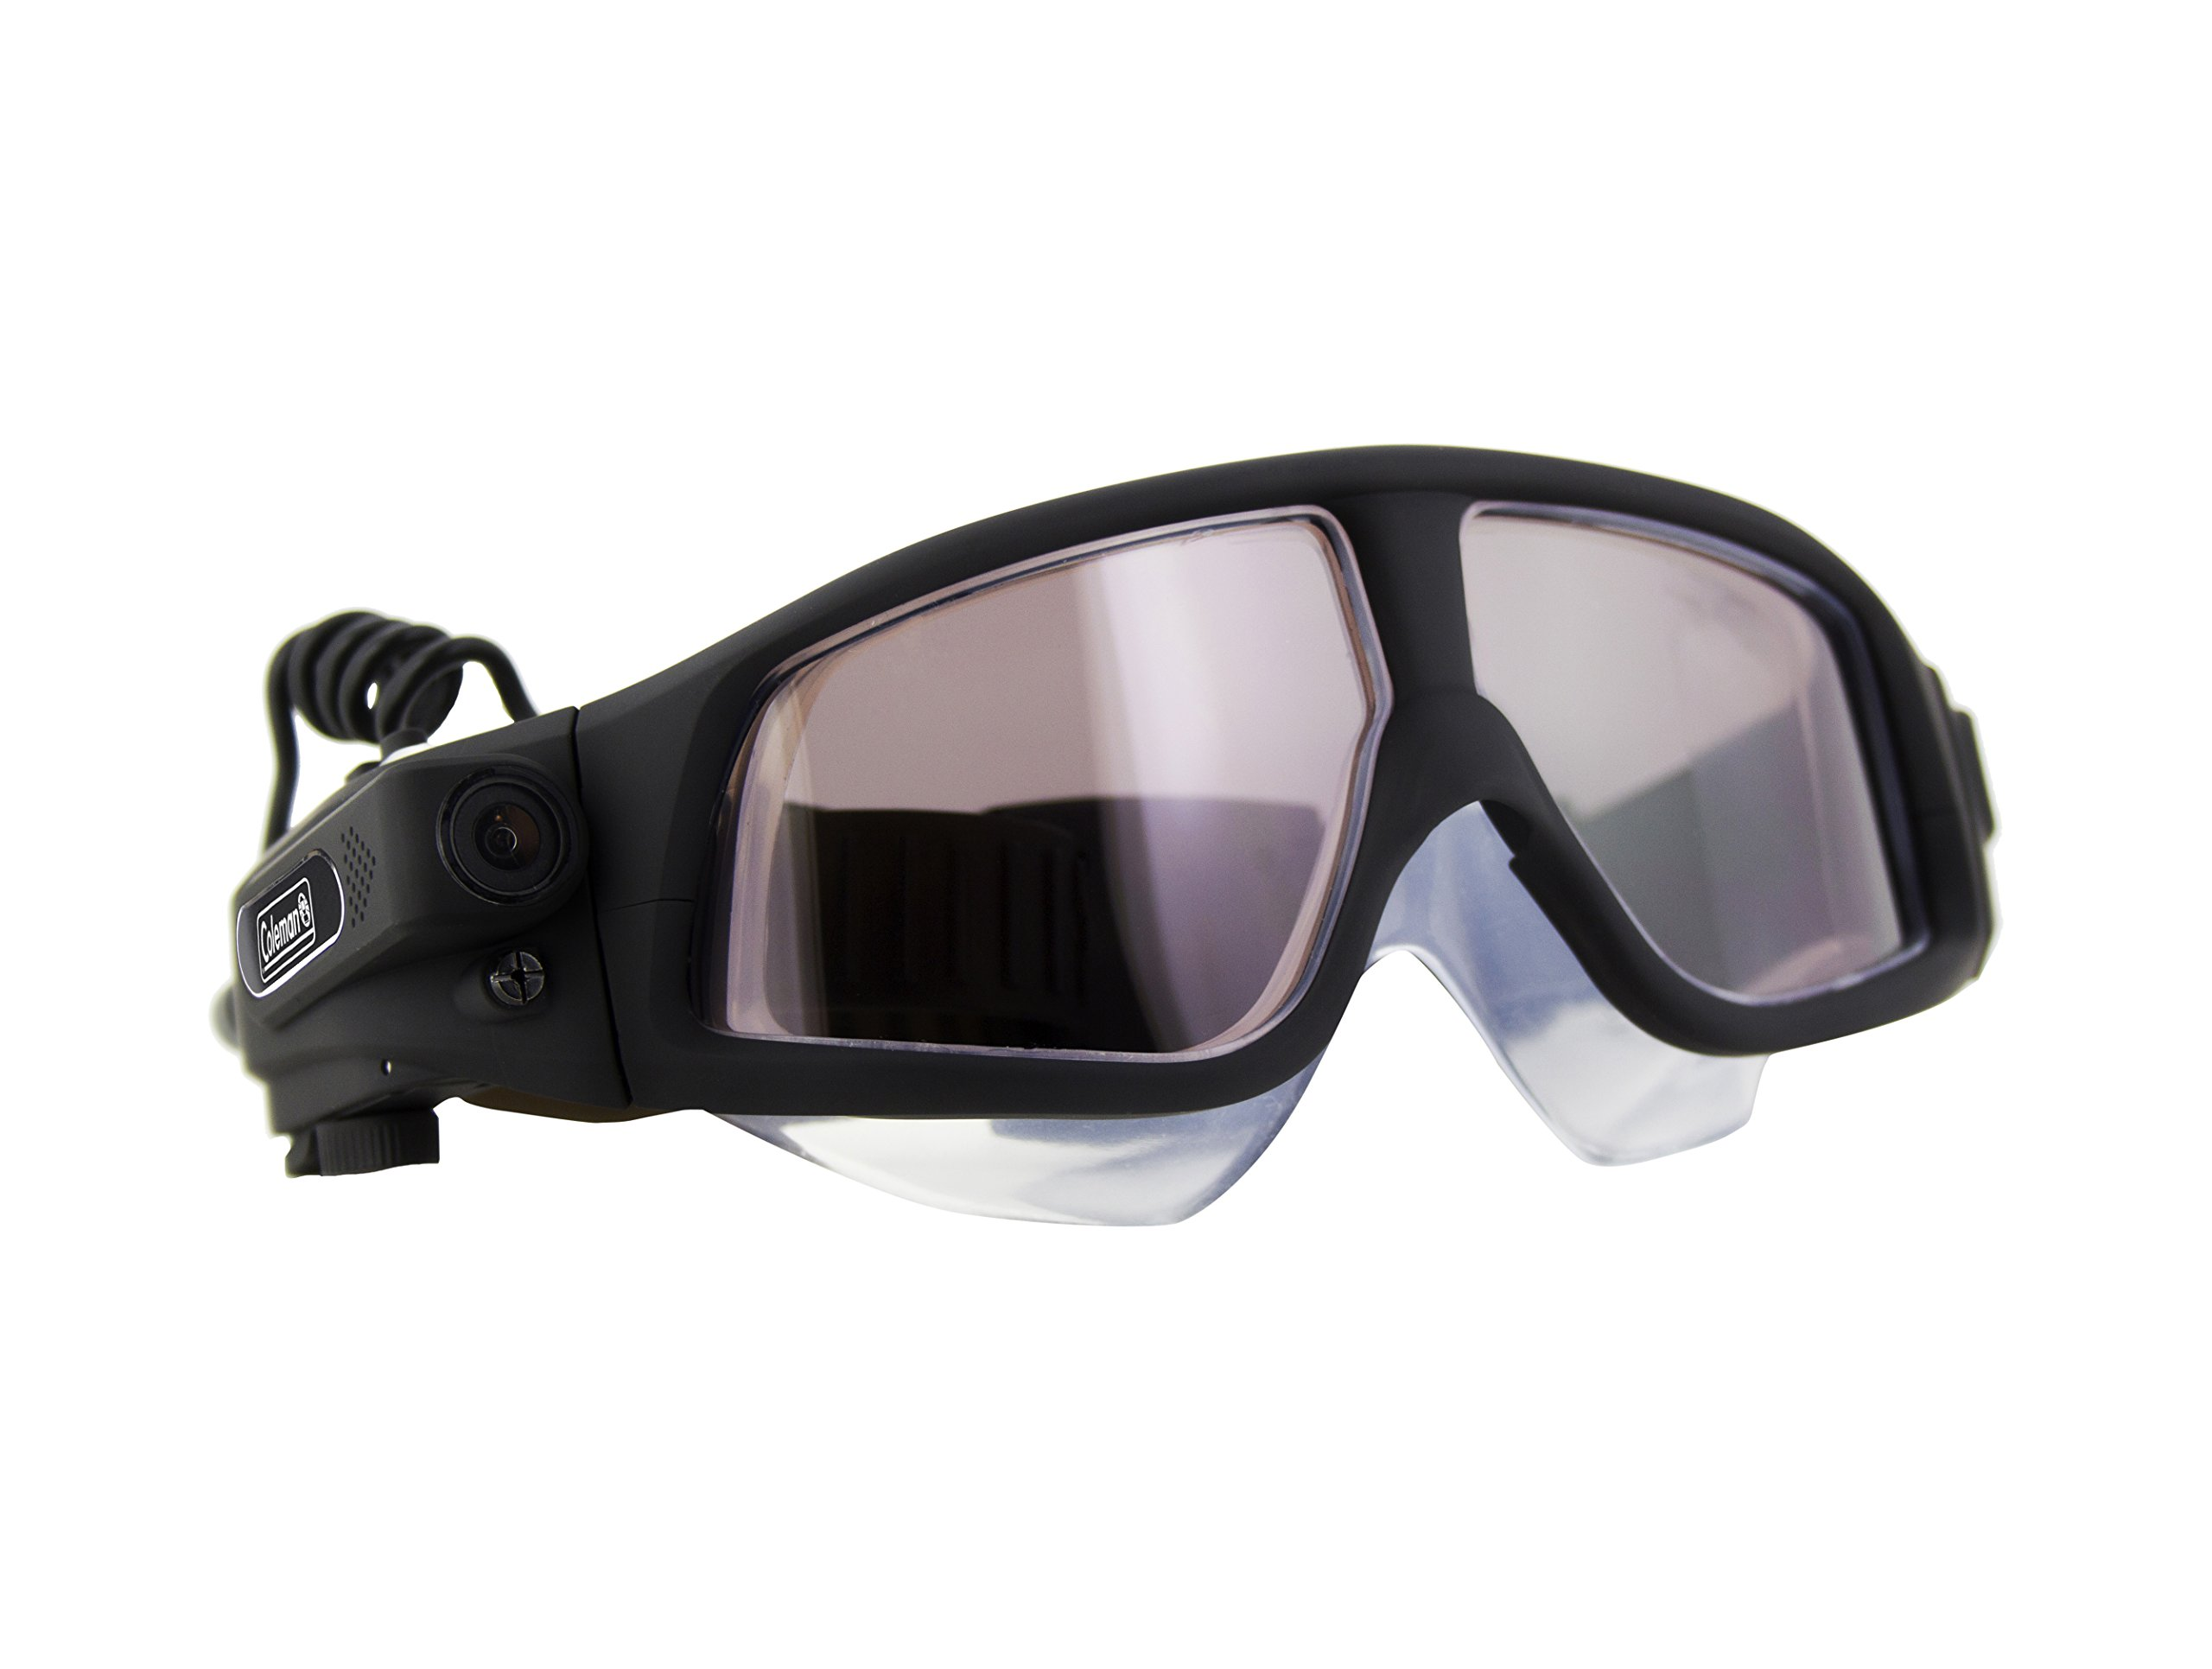 Coleman G7HD-SWIM Vision HD Underwater Swimming Goggles with Video Camera by Coleman